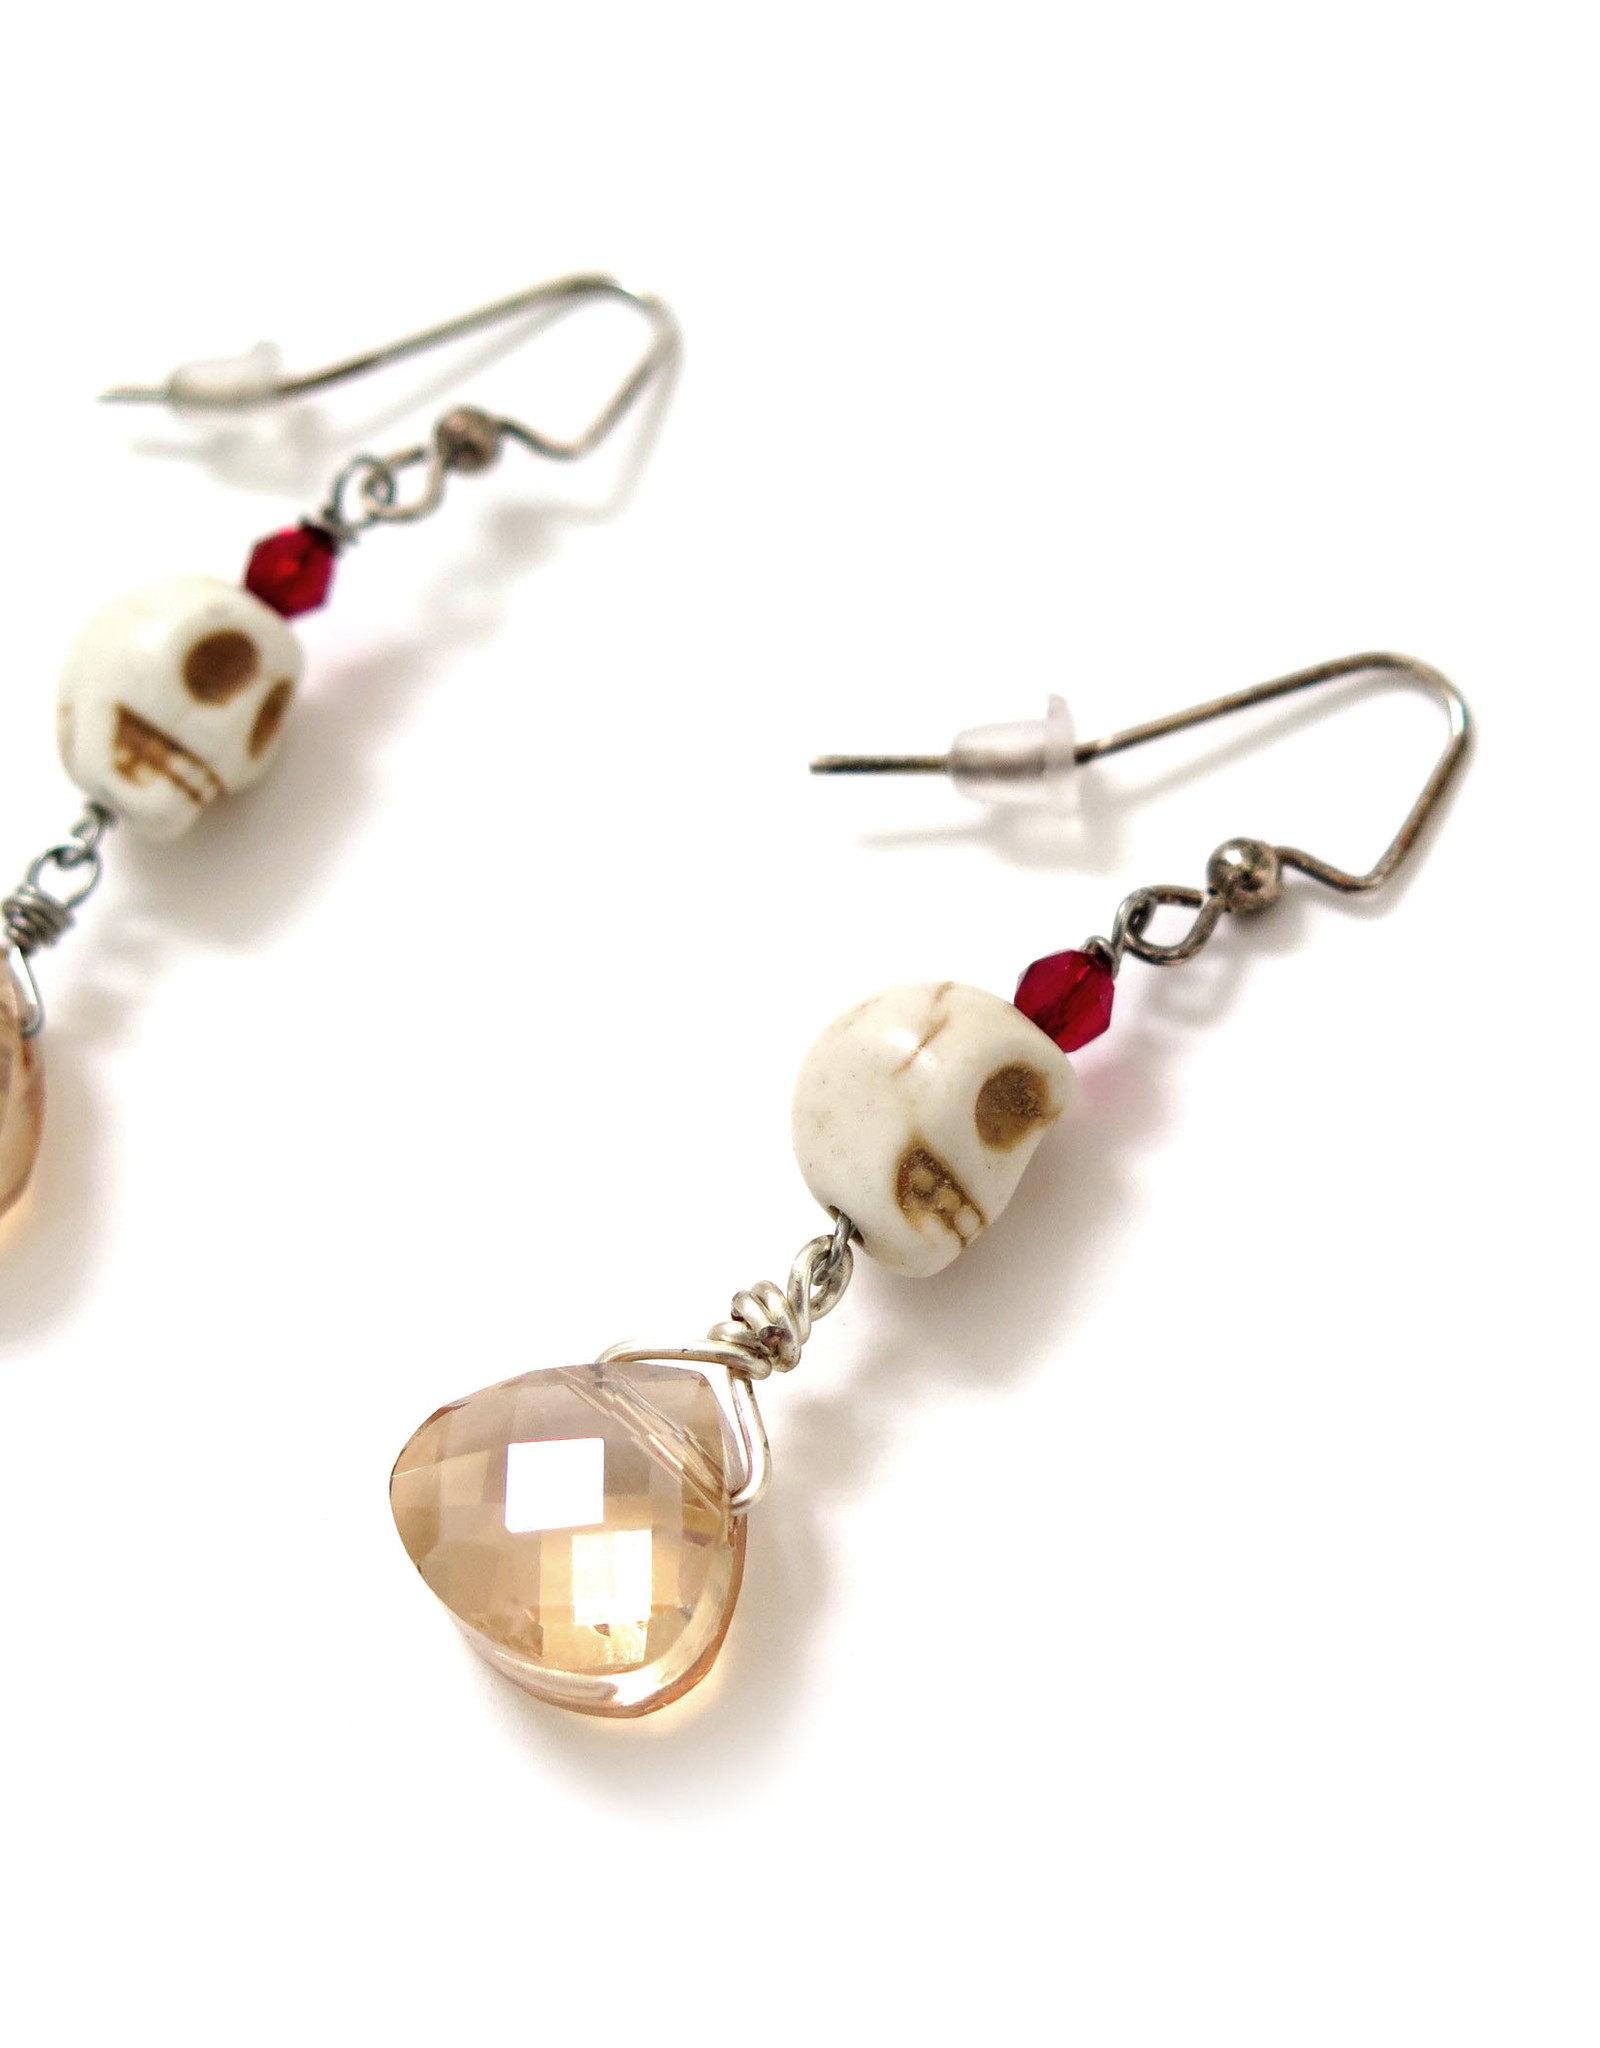 Skull Earrings with small champagne jewel, Dana Diederich